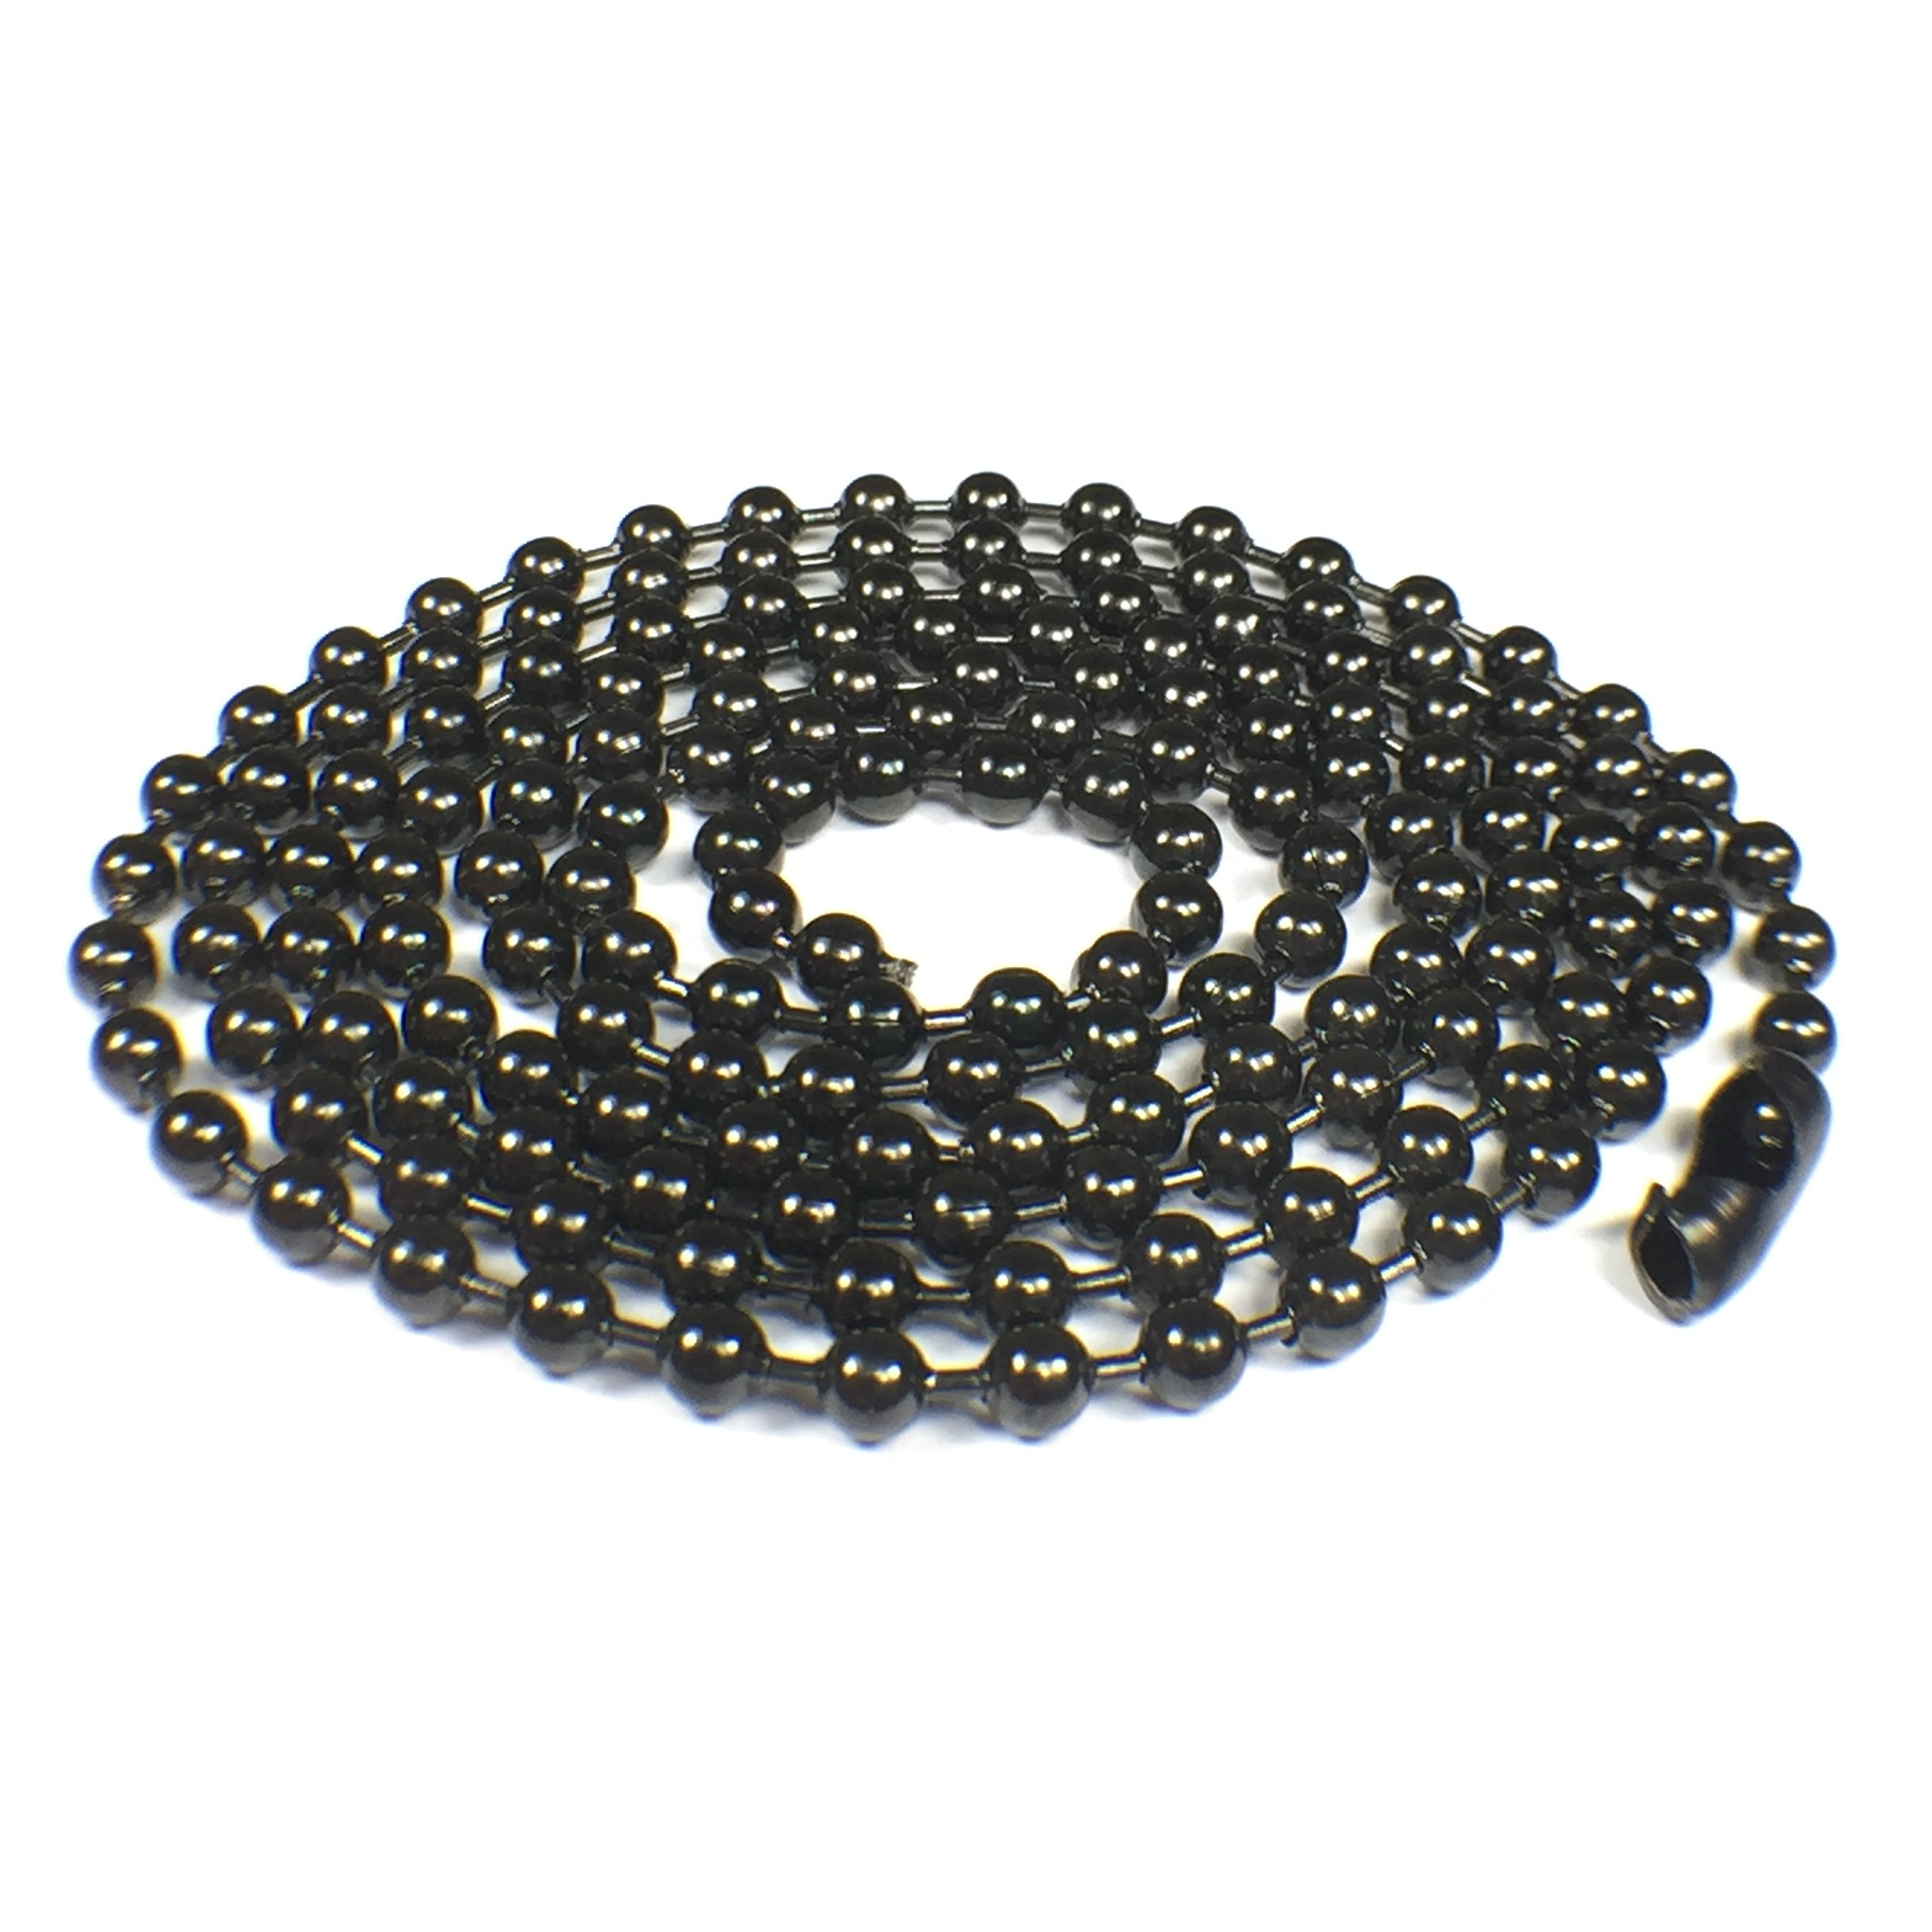 SANDRA Mens Jewelry 4.5 mm 18-40 Silver Stainless Steel Bead Necklace Chain